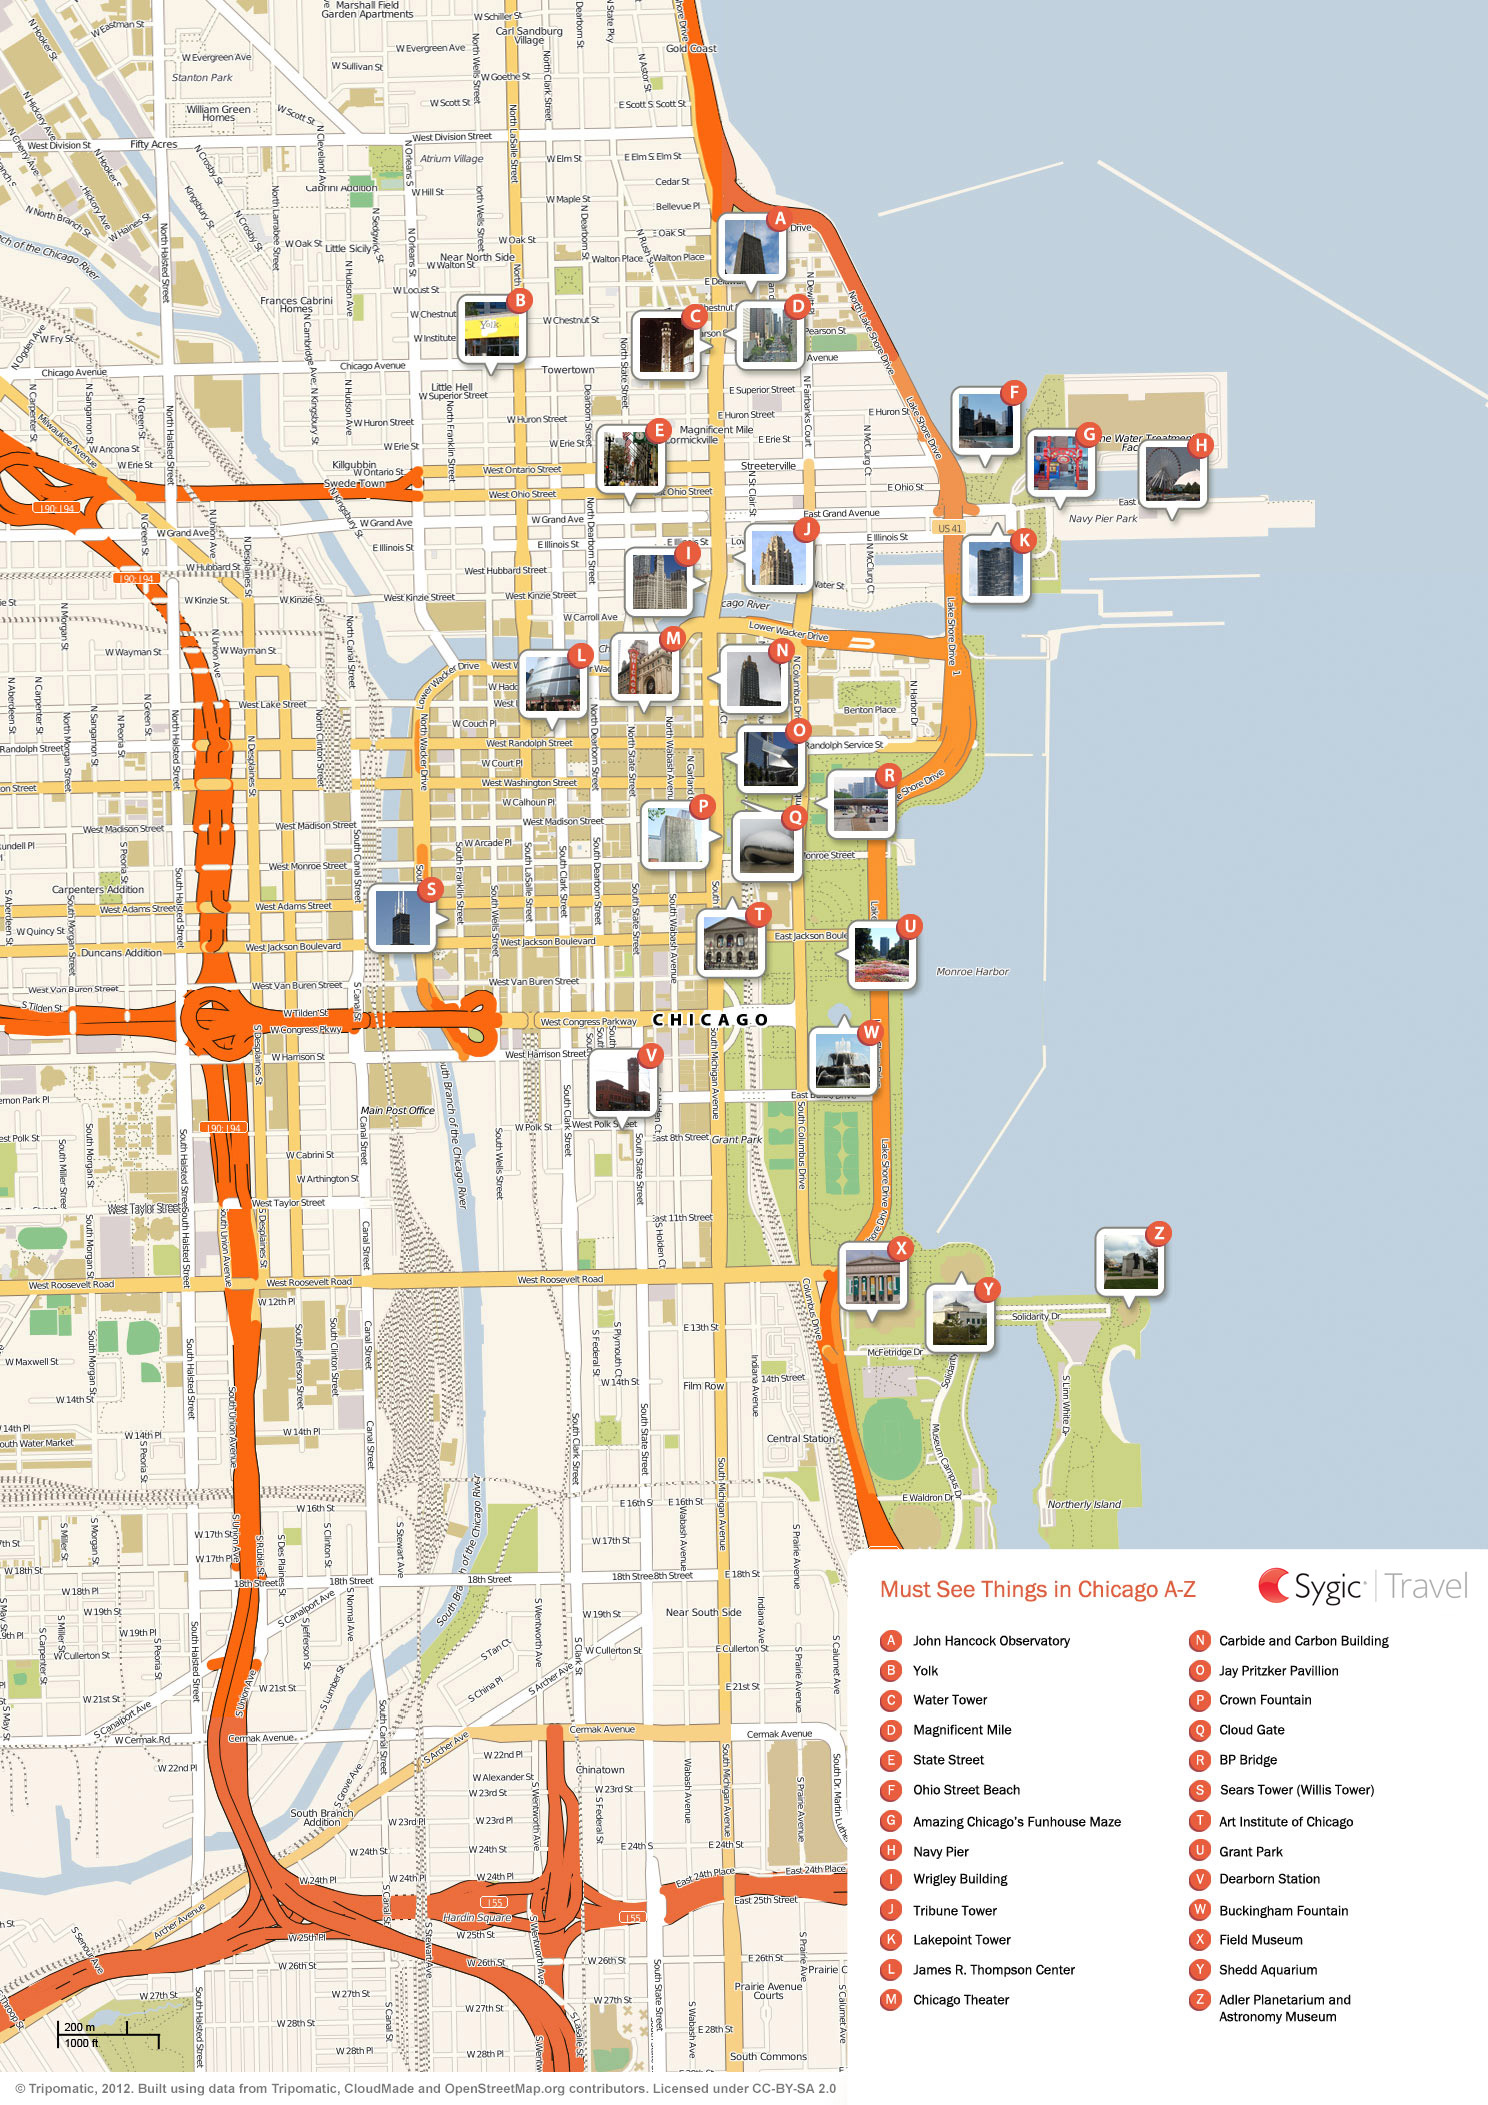 Chicago Printable Tourist Map – Chicago Tourist Map